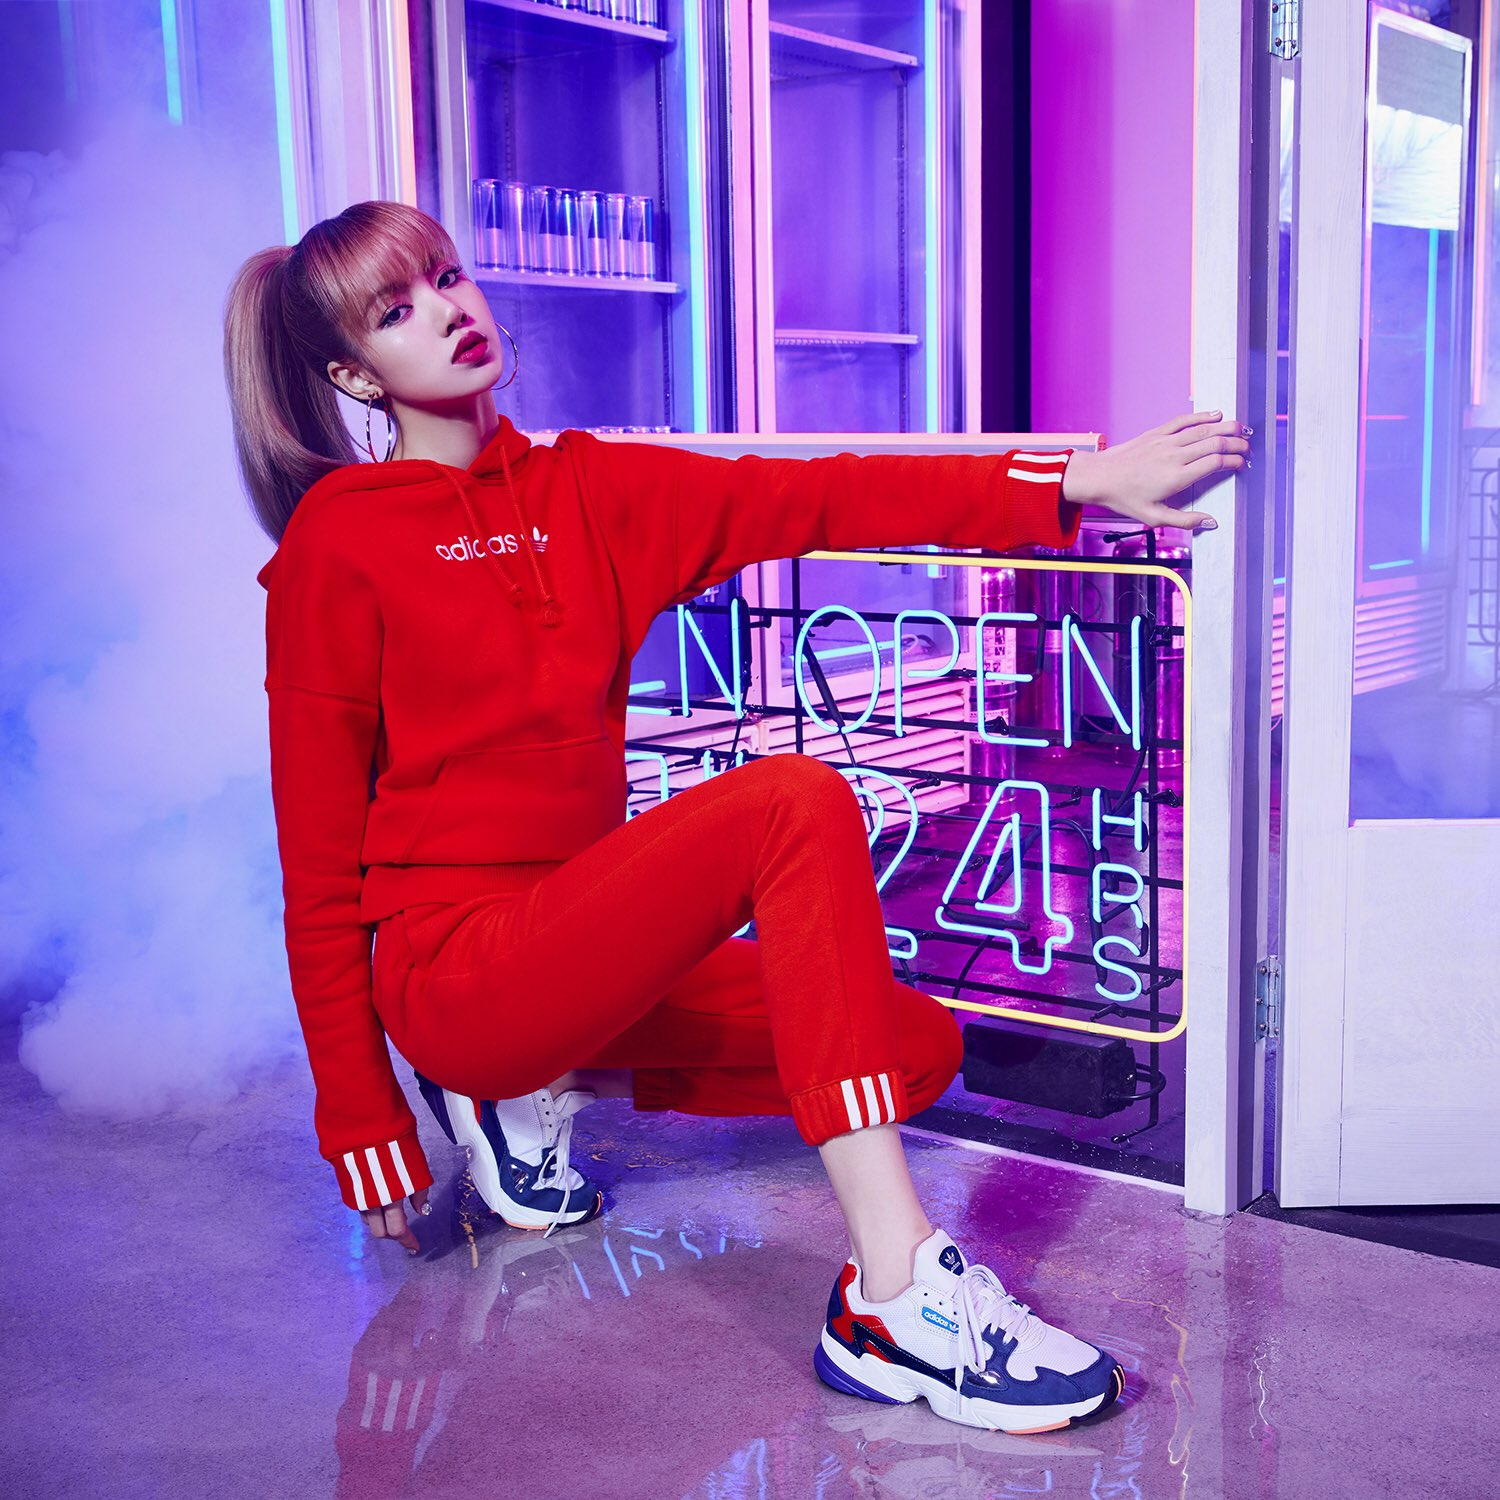 181130 Adidas Korea Twitter Updated With Lisa Lisa Blackpink